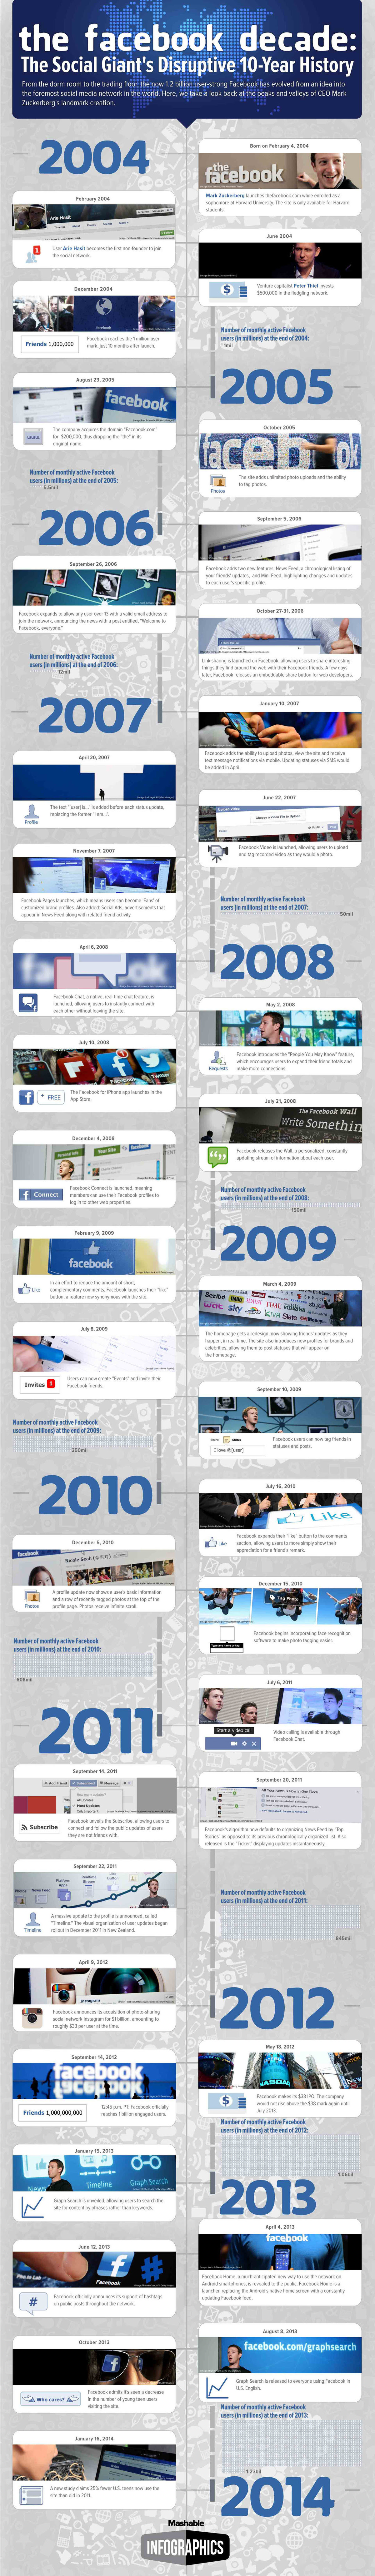 Infographic: Facebook Decade: The Social Giant's Disruptive 10-Year History